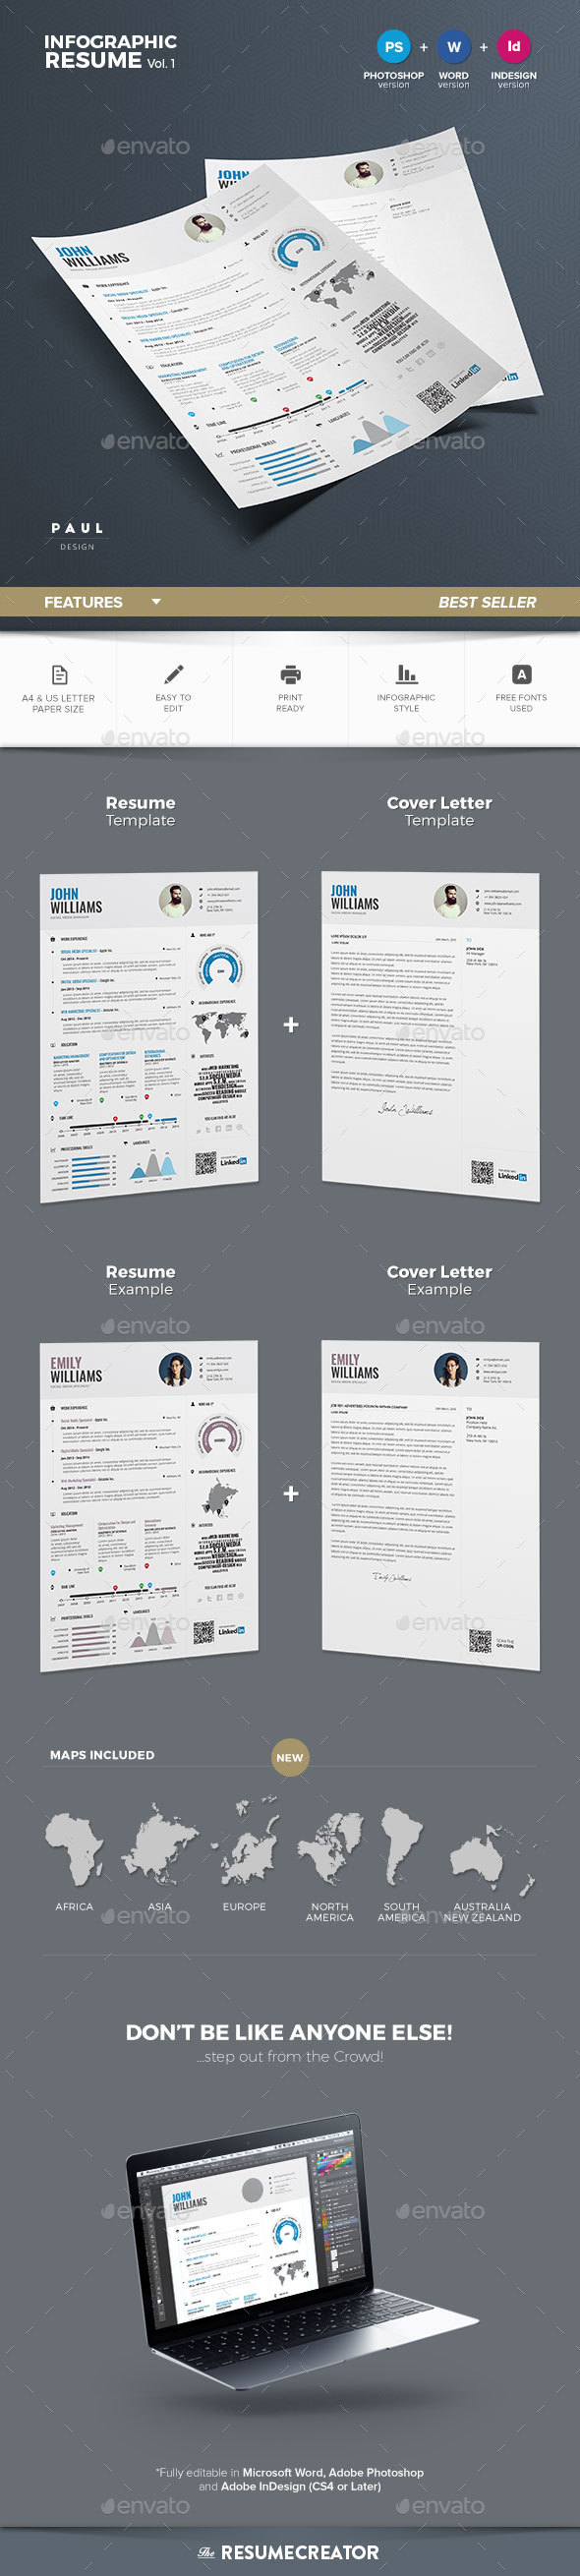 Infographic Resume Vol  Infographic Resume Infographic And Template